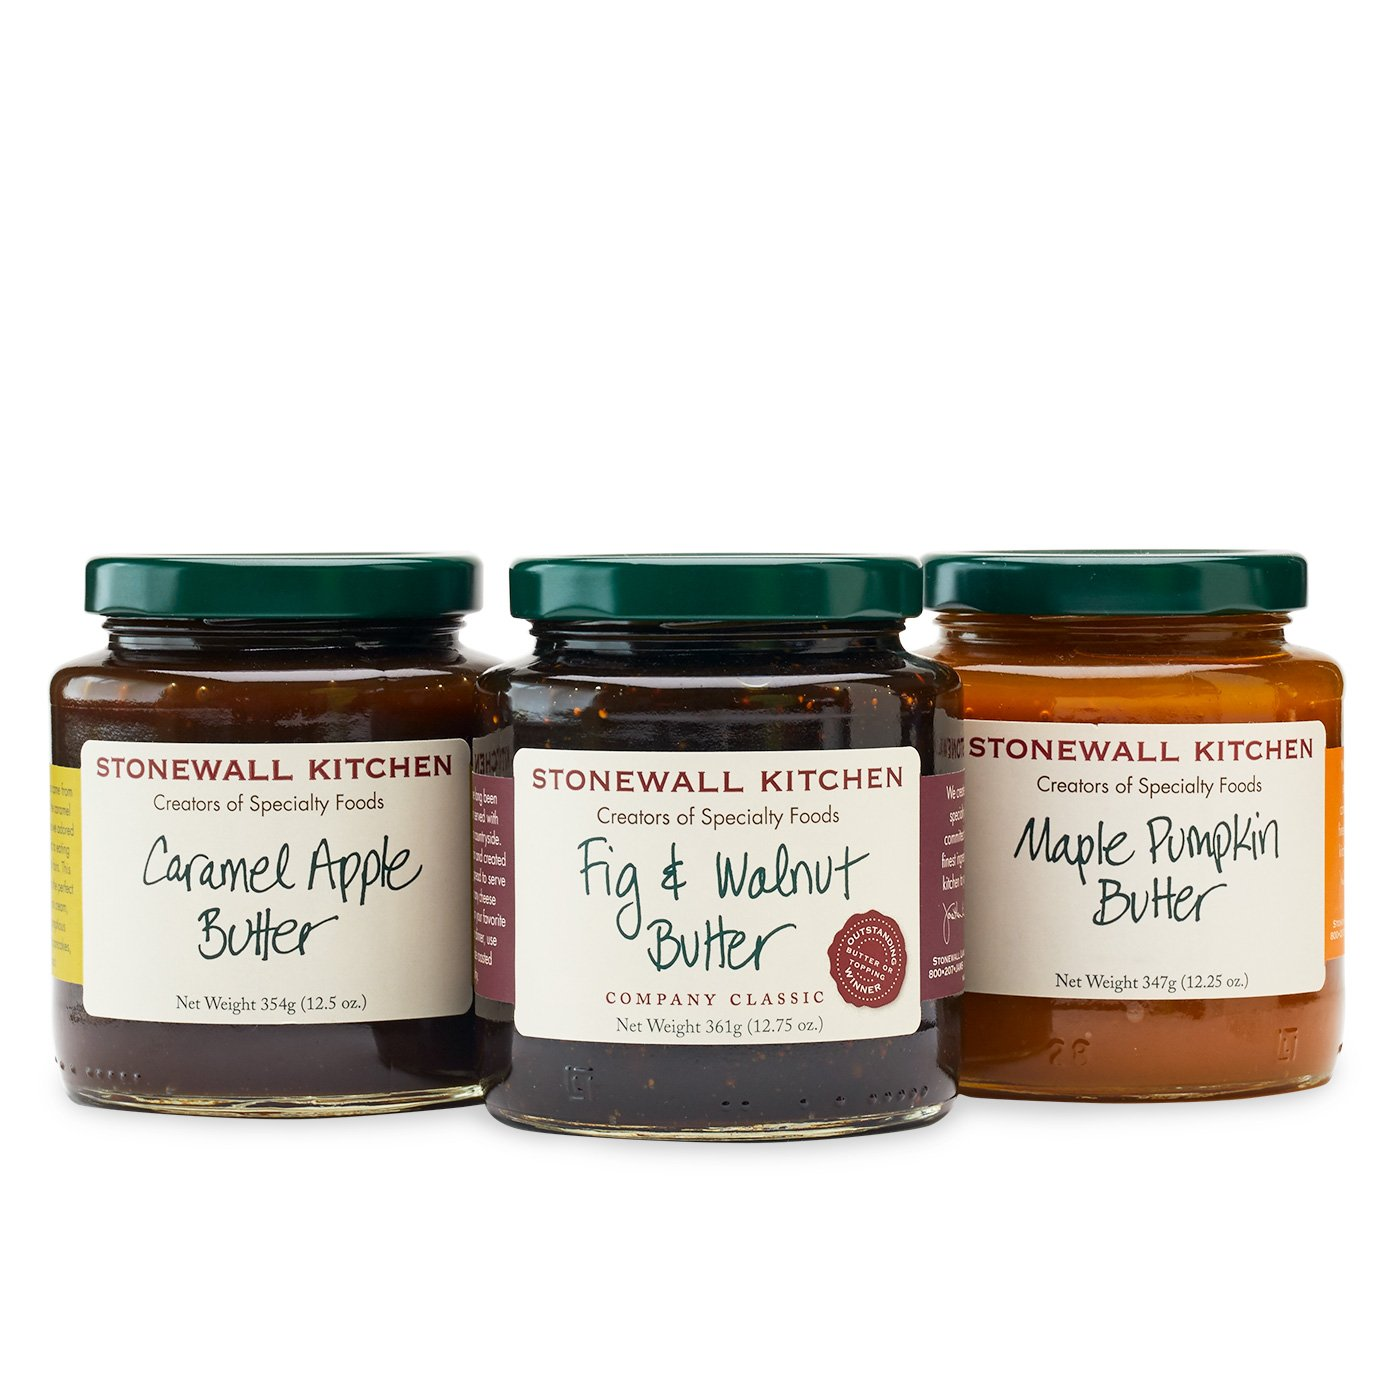 Stonewall Kitchen Our Fruit Butter Collection (3 pc)